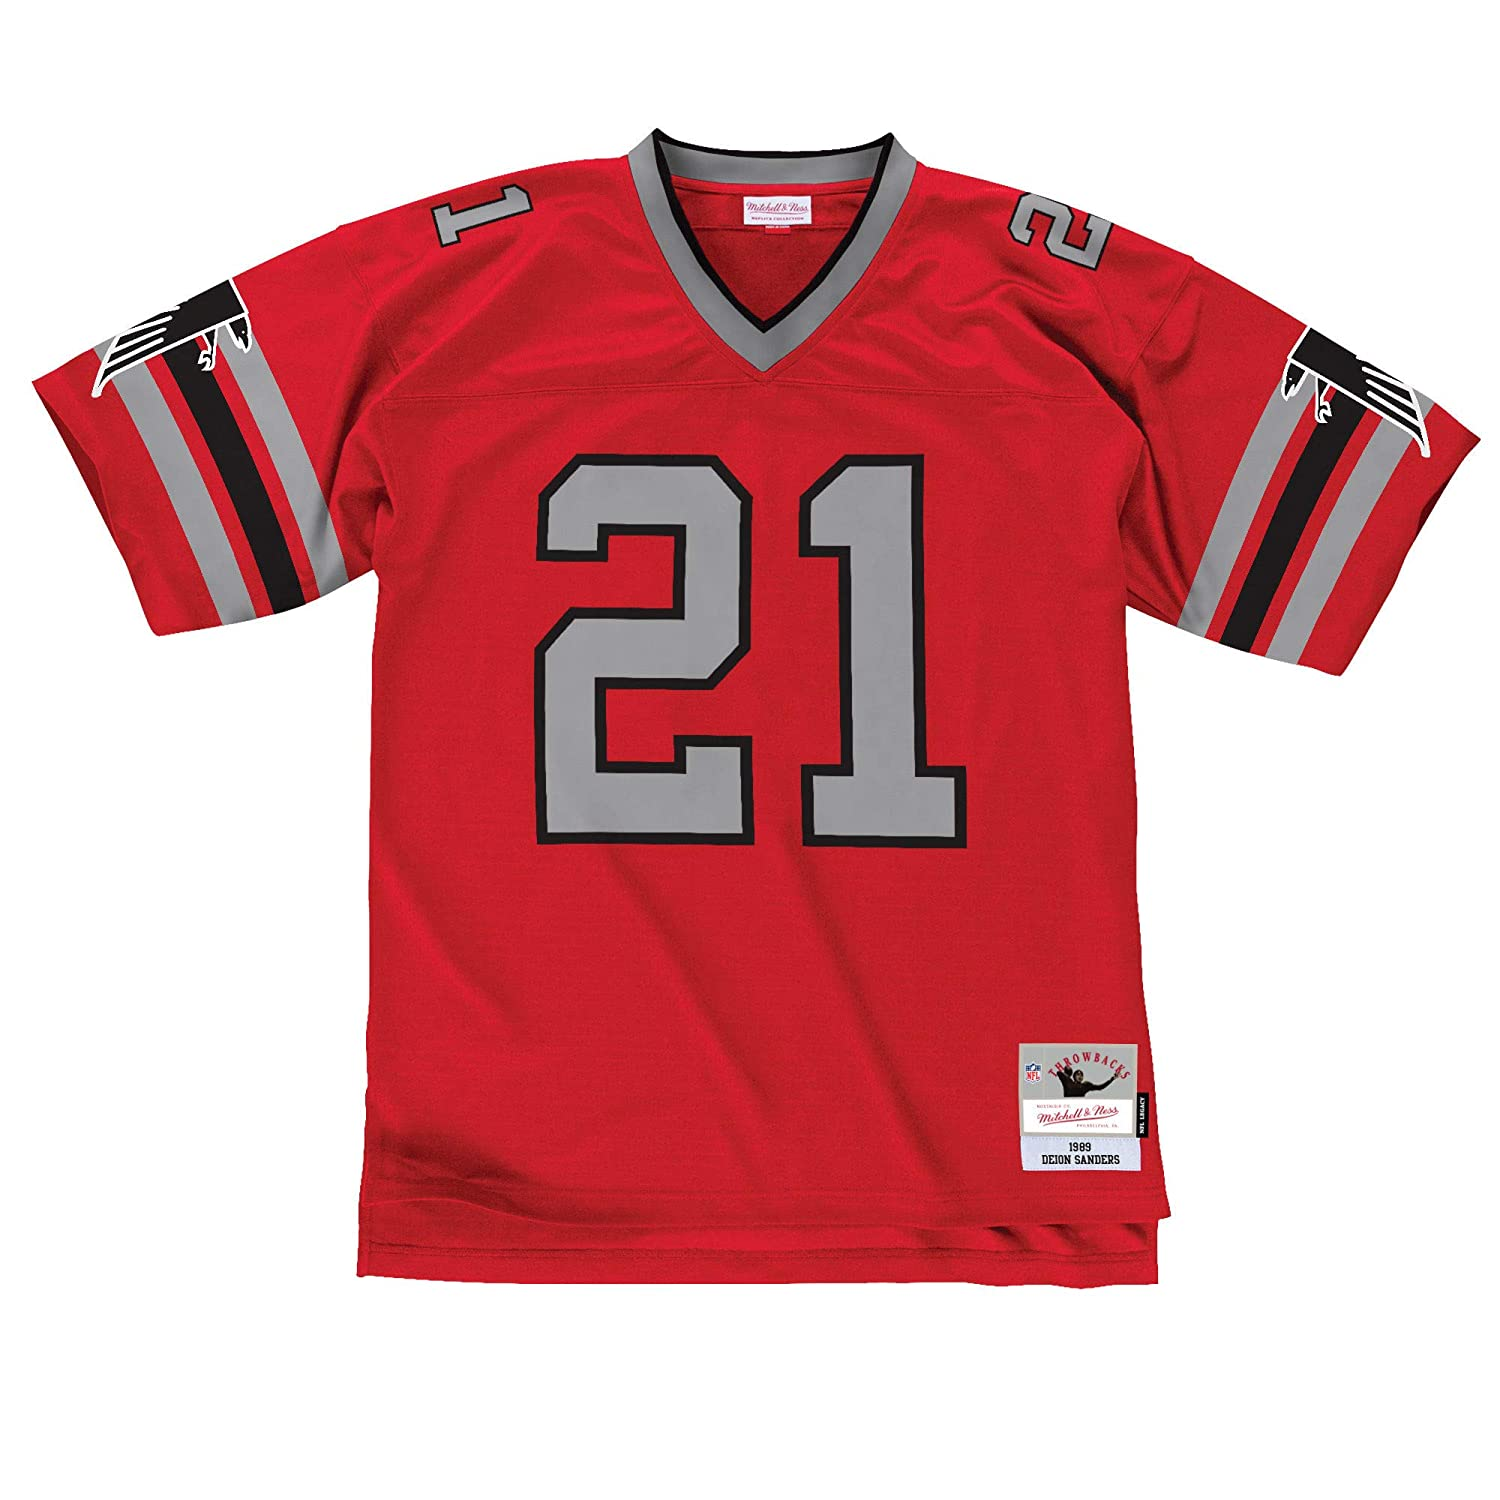 buy online fa26a 91c56 Mitchell & Ness Deion Sanders Atlanta Falcons Red Throwback Jersey